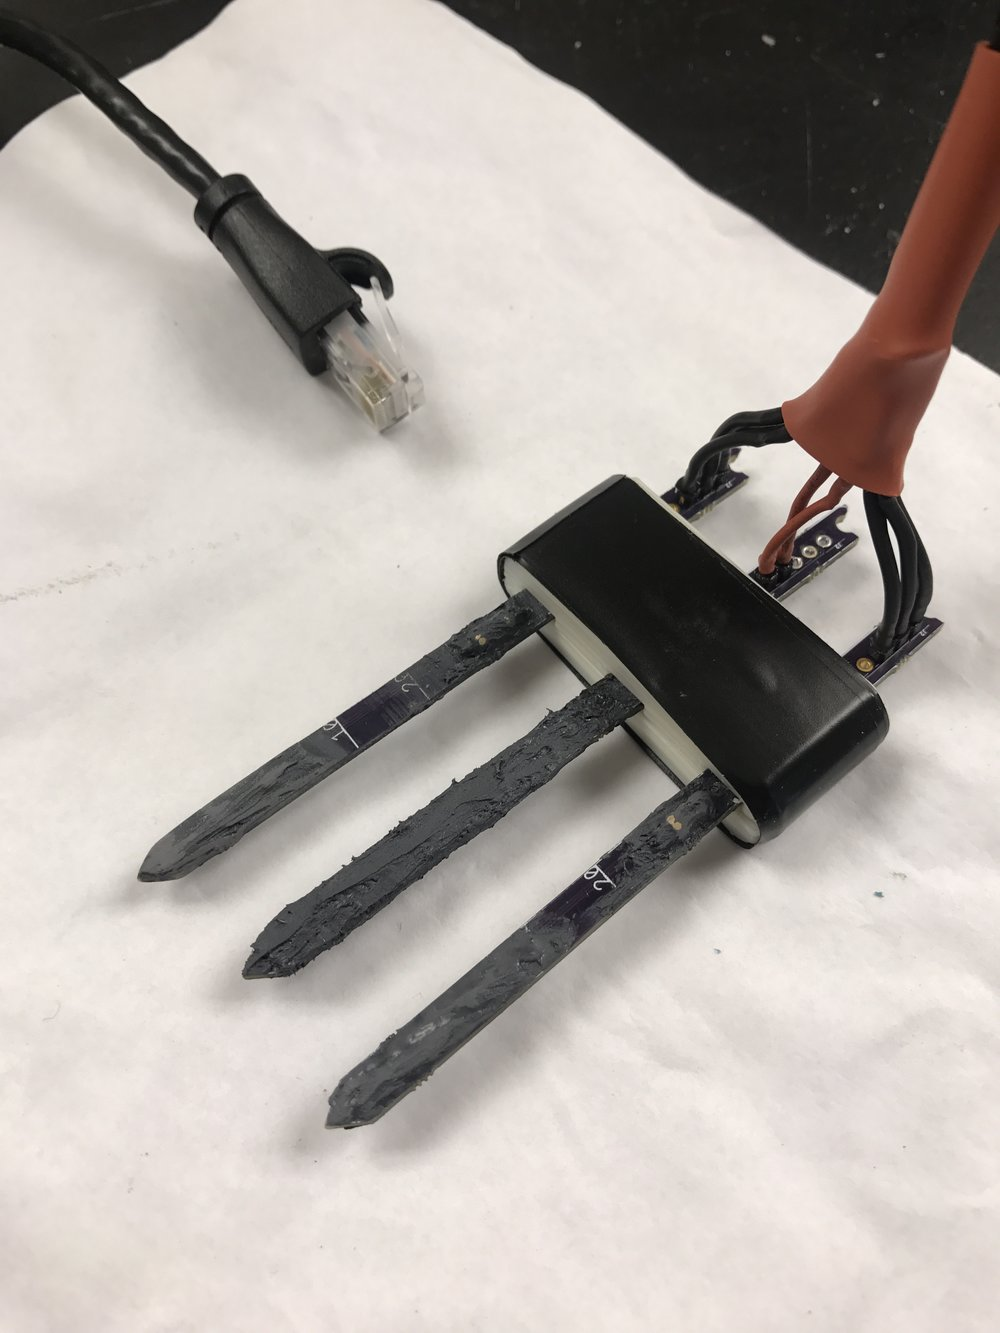 The two outside probes (thermistor probes) have been sanded. As you can see, there is a smoother texture than the middle probe (HRM coil heater probe), which has not yet been sanded.